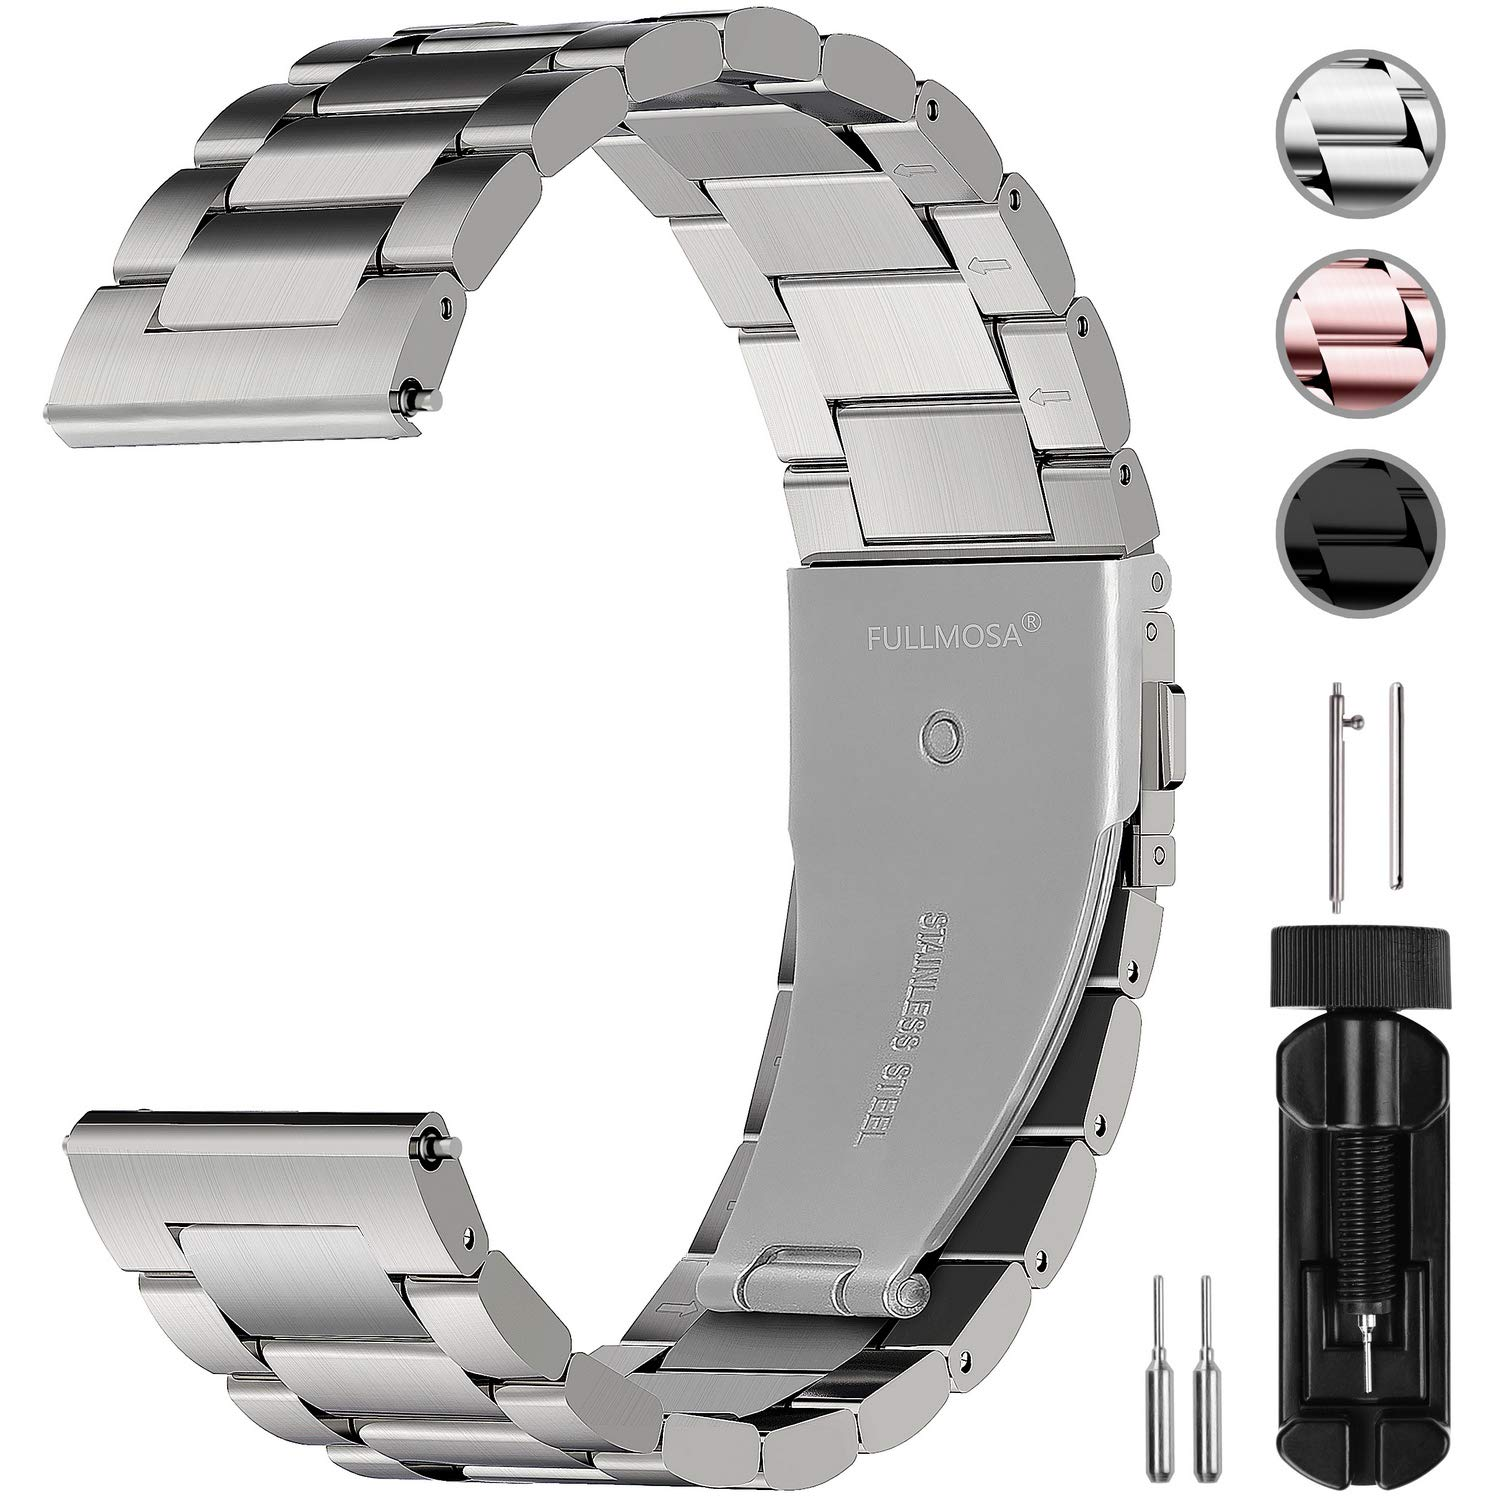 Watchbands Realistic Premium Stainless Steel Watchband For Samsung Gear S3 Classic Frontier Smart Watch Band Wrist Strap Link Bracelet Silver Black With The Best Service